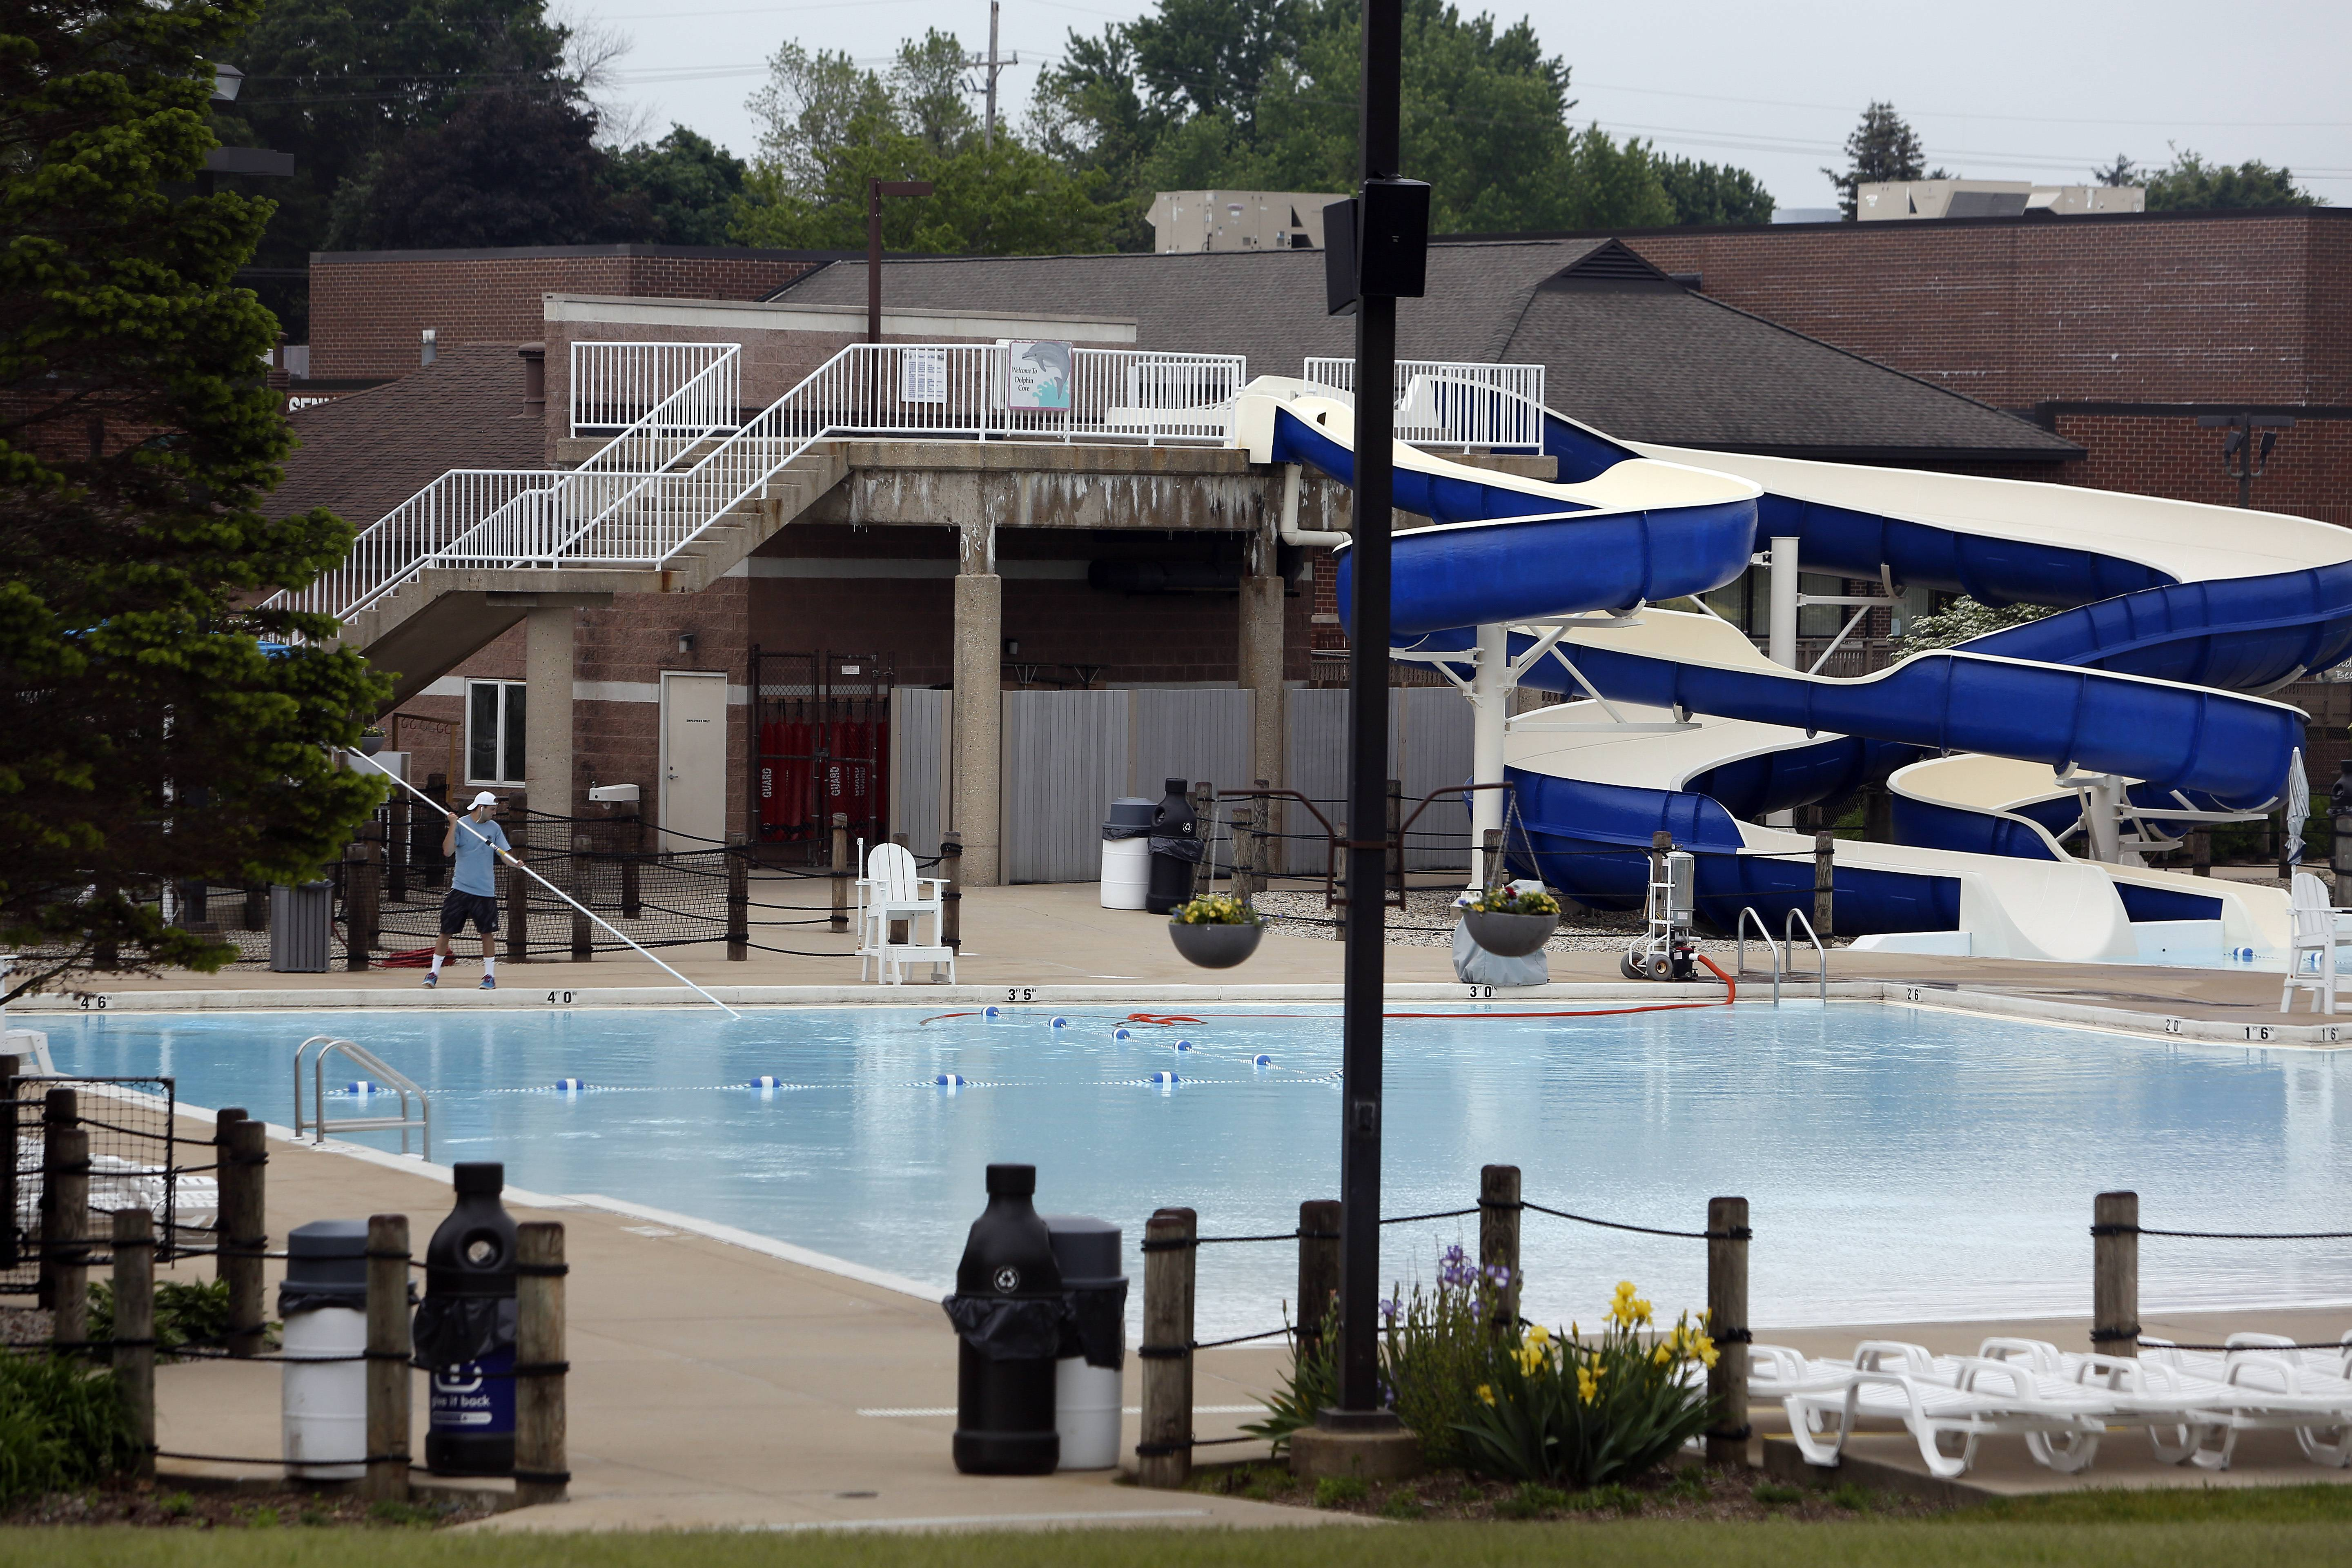 Despite attractive amenities like water slides and sand pits, Dolphin Cove Family Aquatics Center of the Dundee Township Park District in Carpentersville won't turn a profit this summer, officials said.